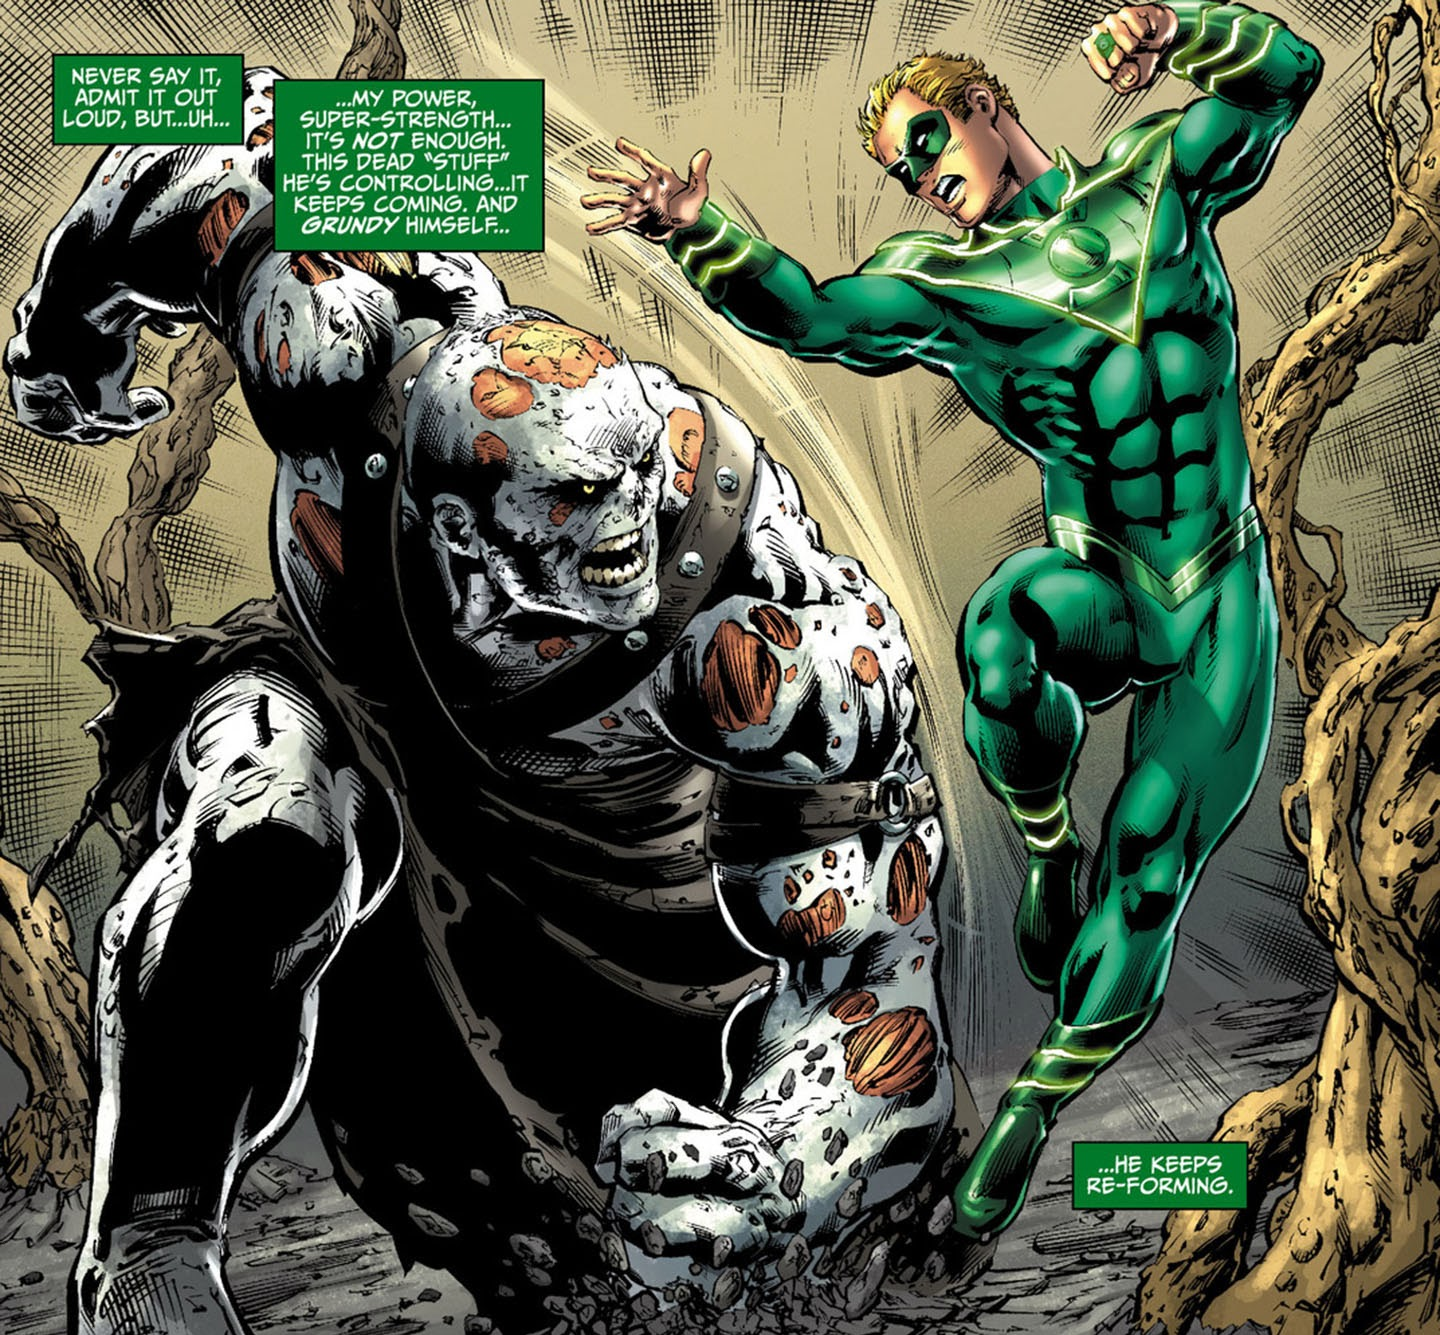 The Brightest Day The Blackest Night: CHARACTER CLOSE-UP